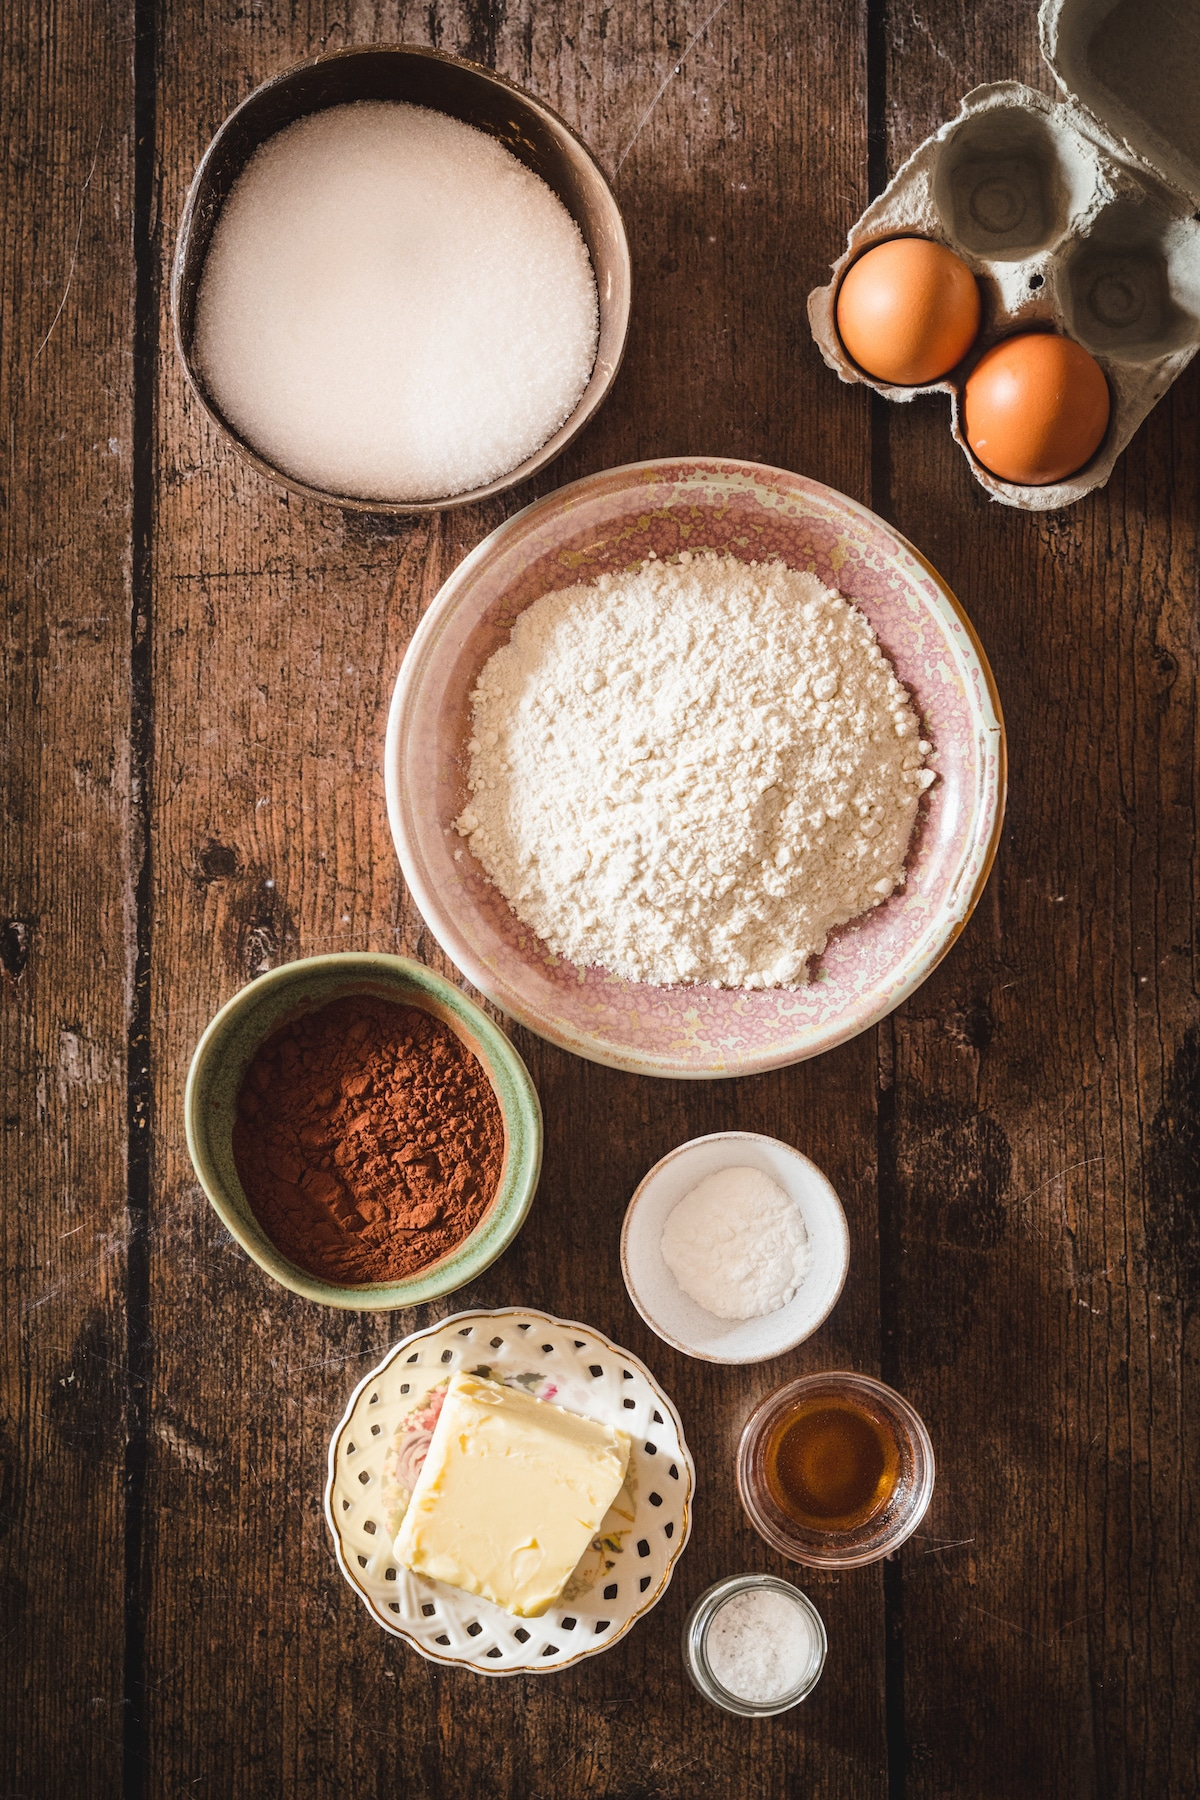 All of the ingredients that you need to make homemade brownies.